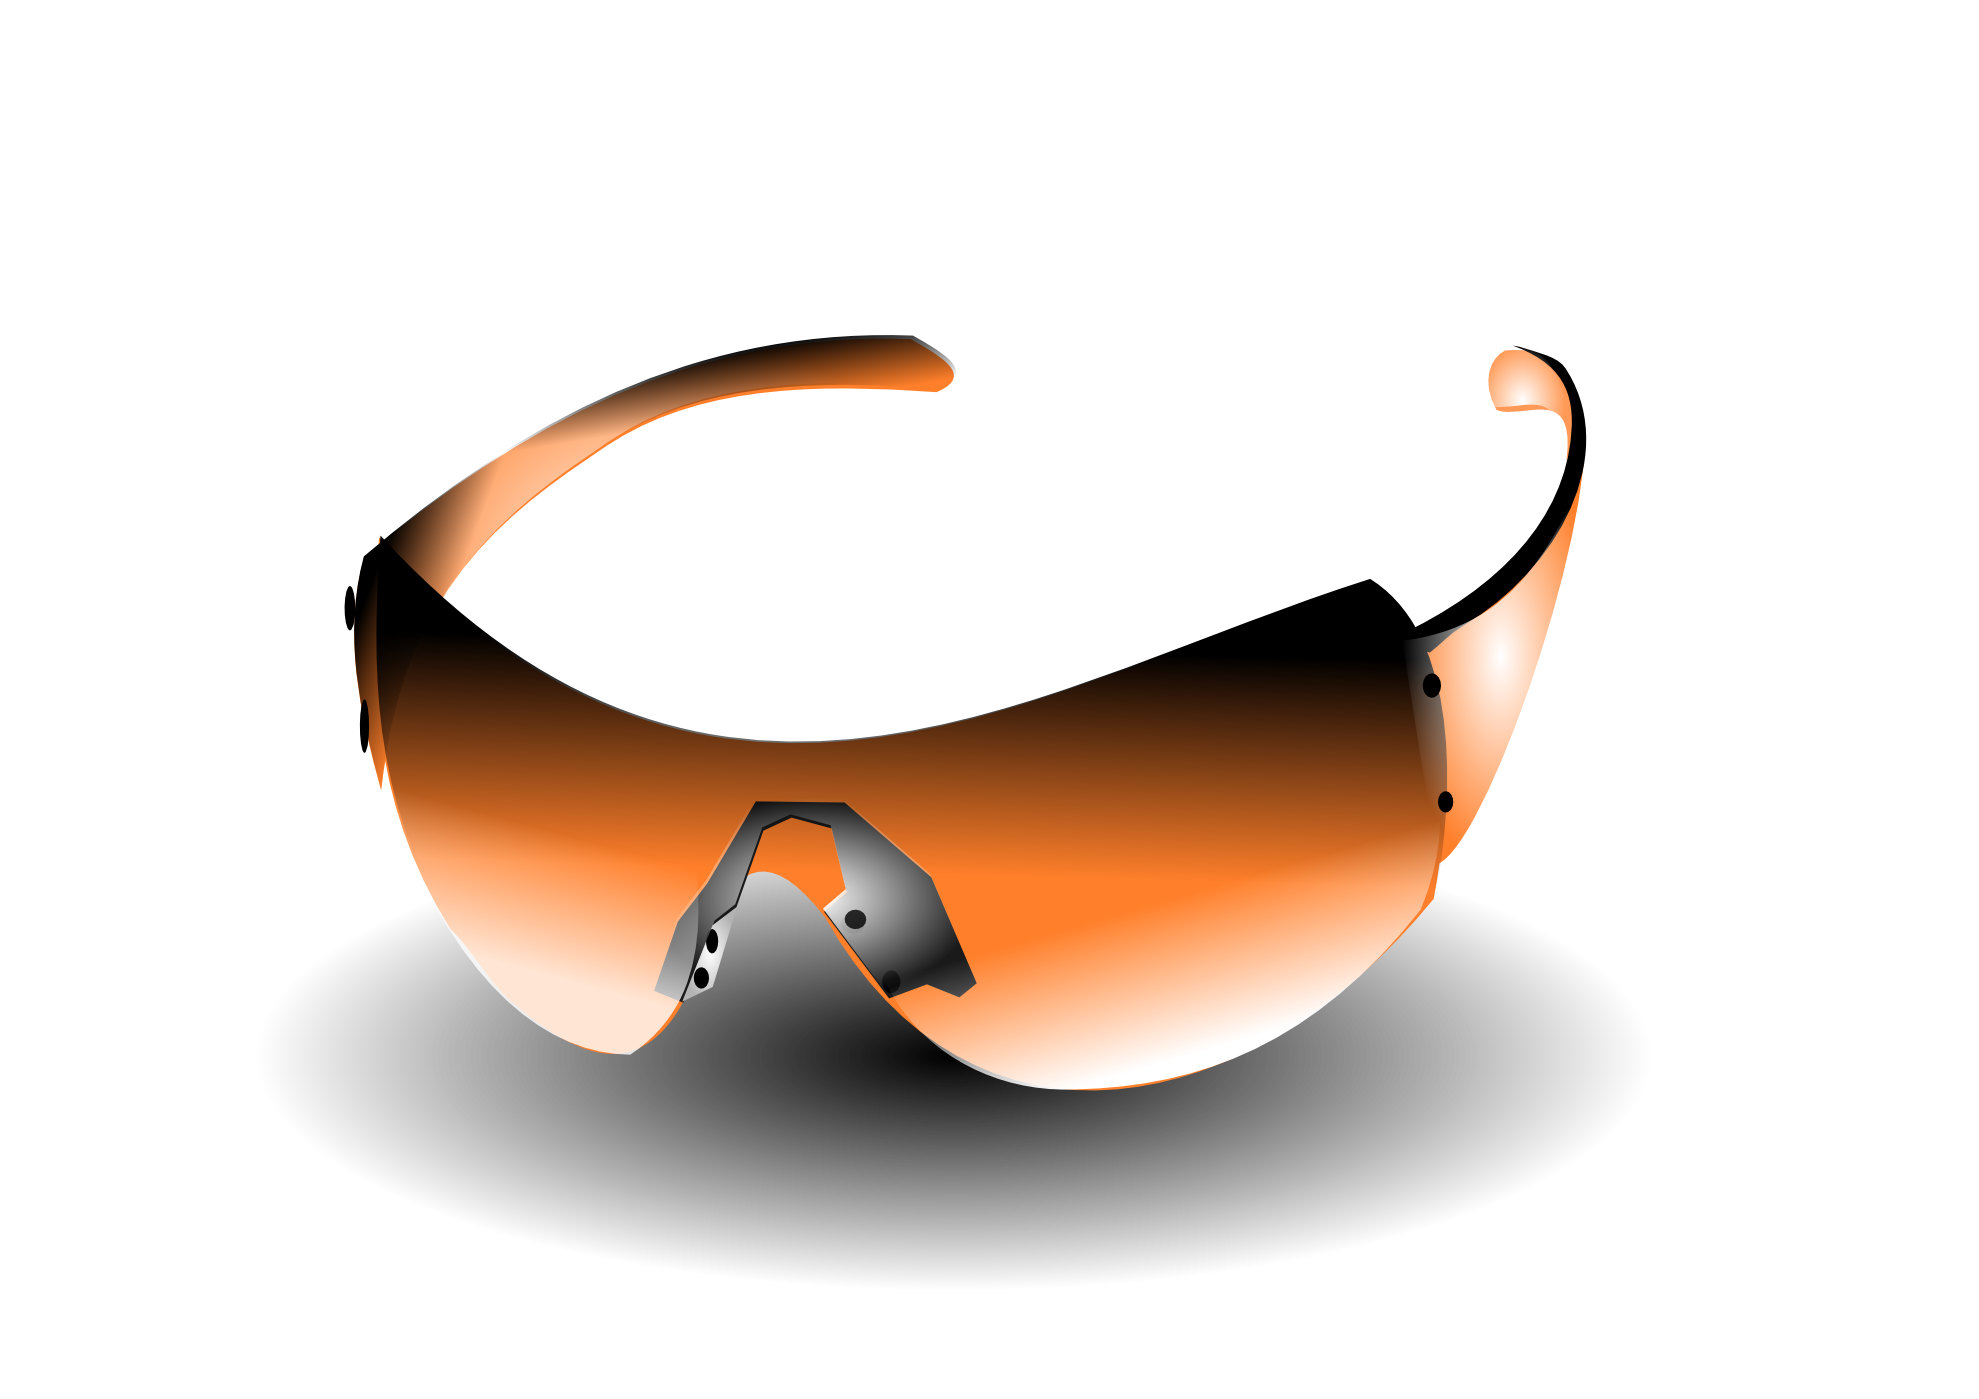 Skull and crossbones with sun glasses clipart graphic freeuse clipartist.net » Clip Art » sun glasses orange clipartist.net 2012 ... graphic freeuse